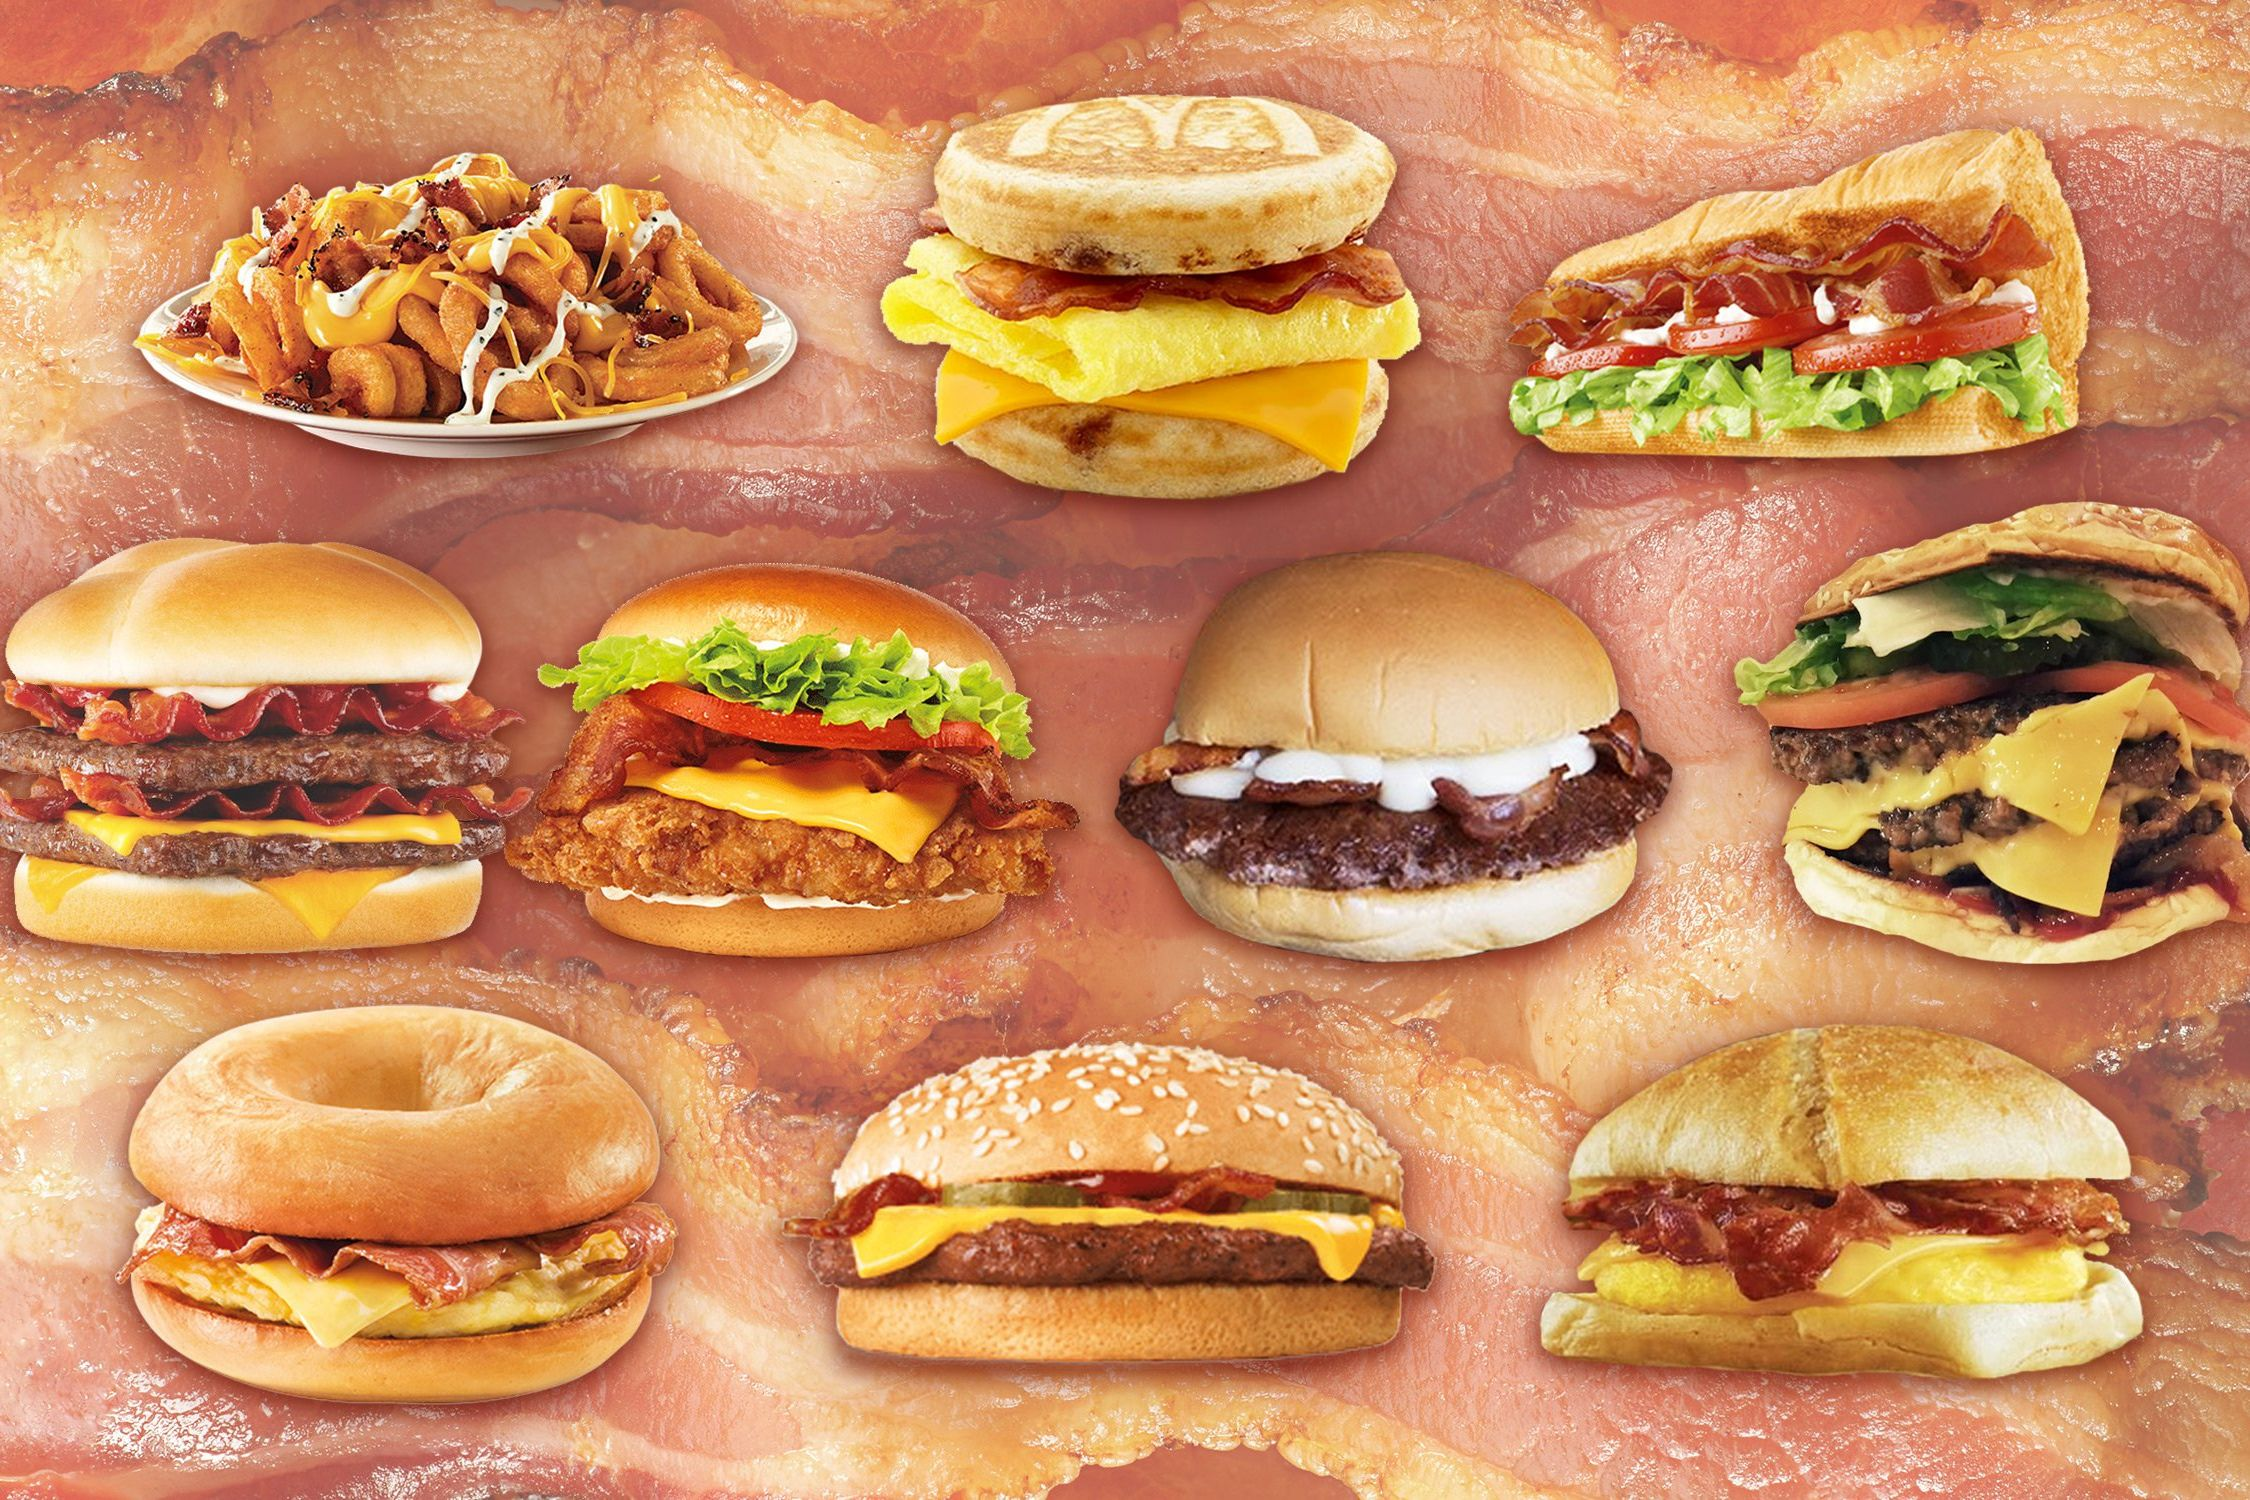 The Best and Worst Bacon from Fast Food Restaurants